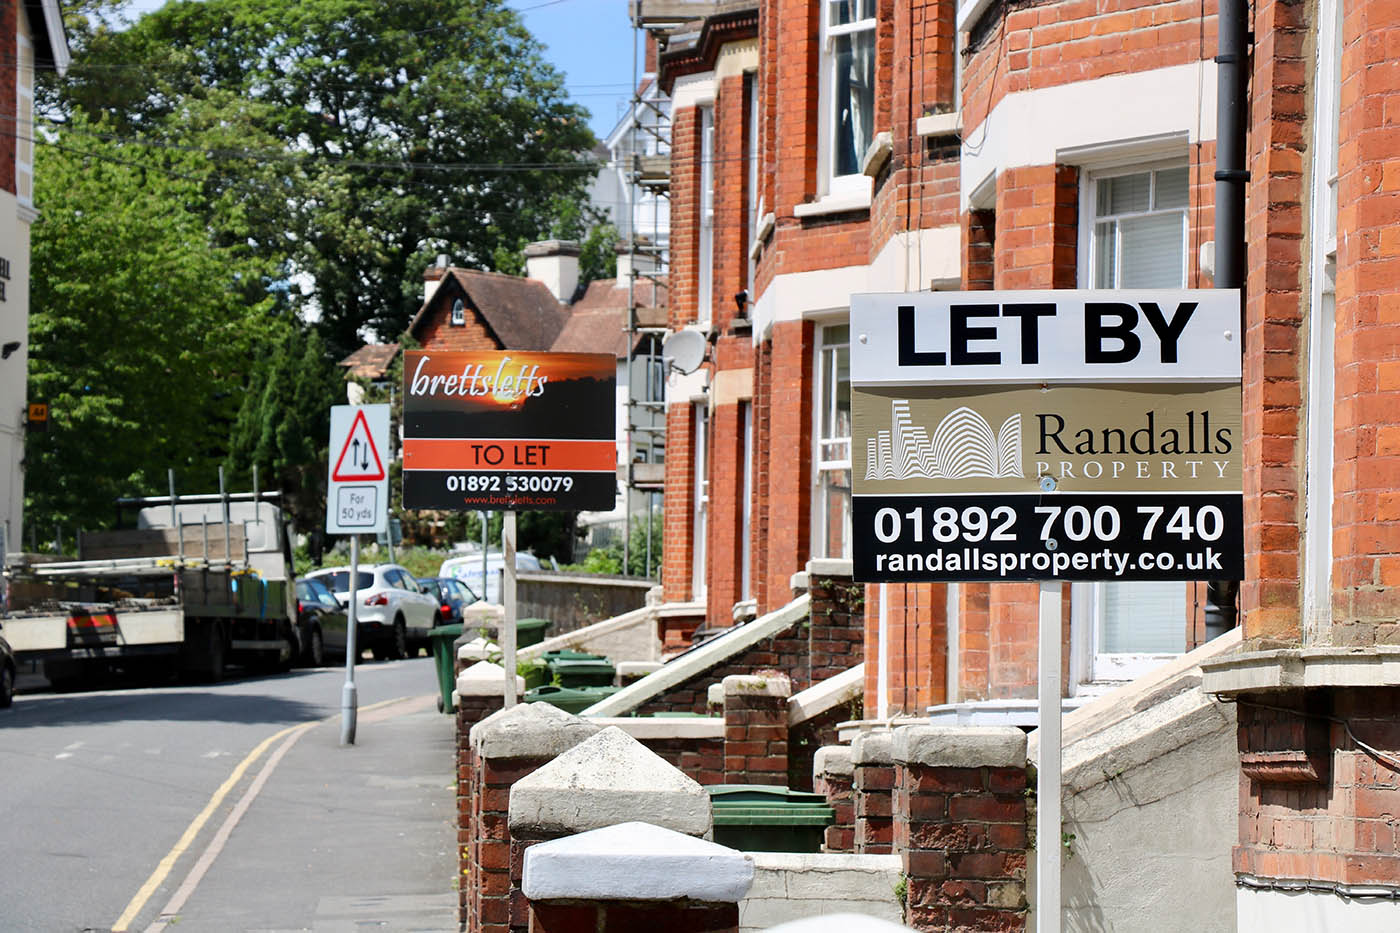 Will buy-to-let troubles presage a phoenix like rise again?